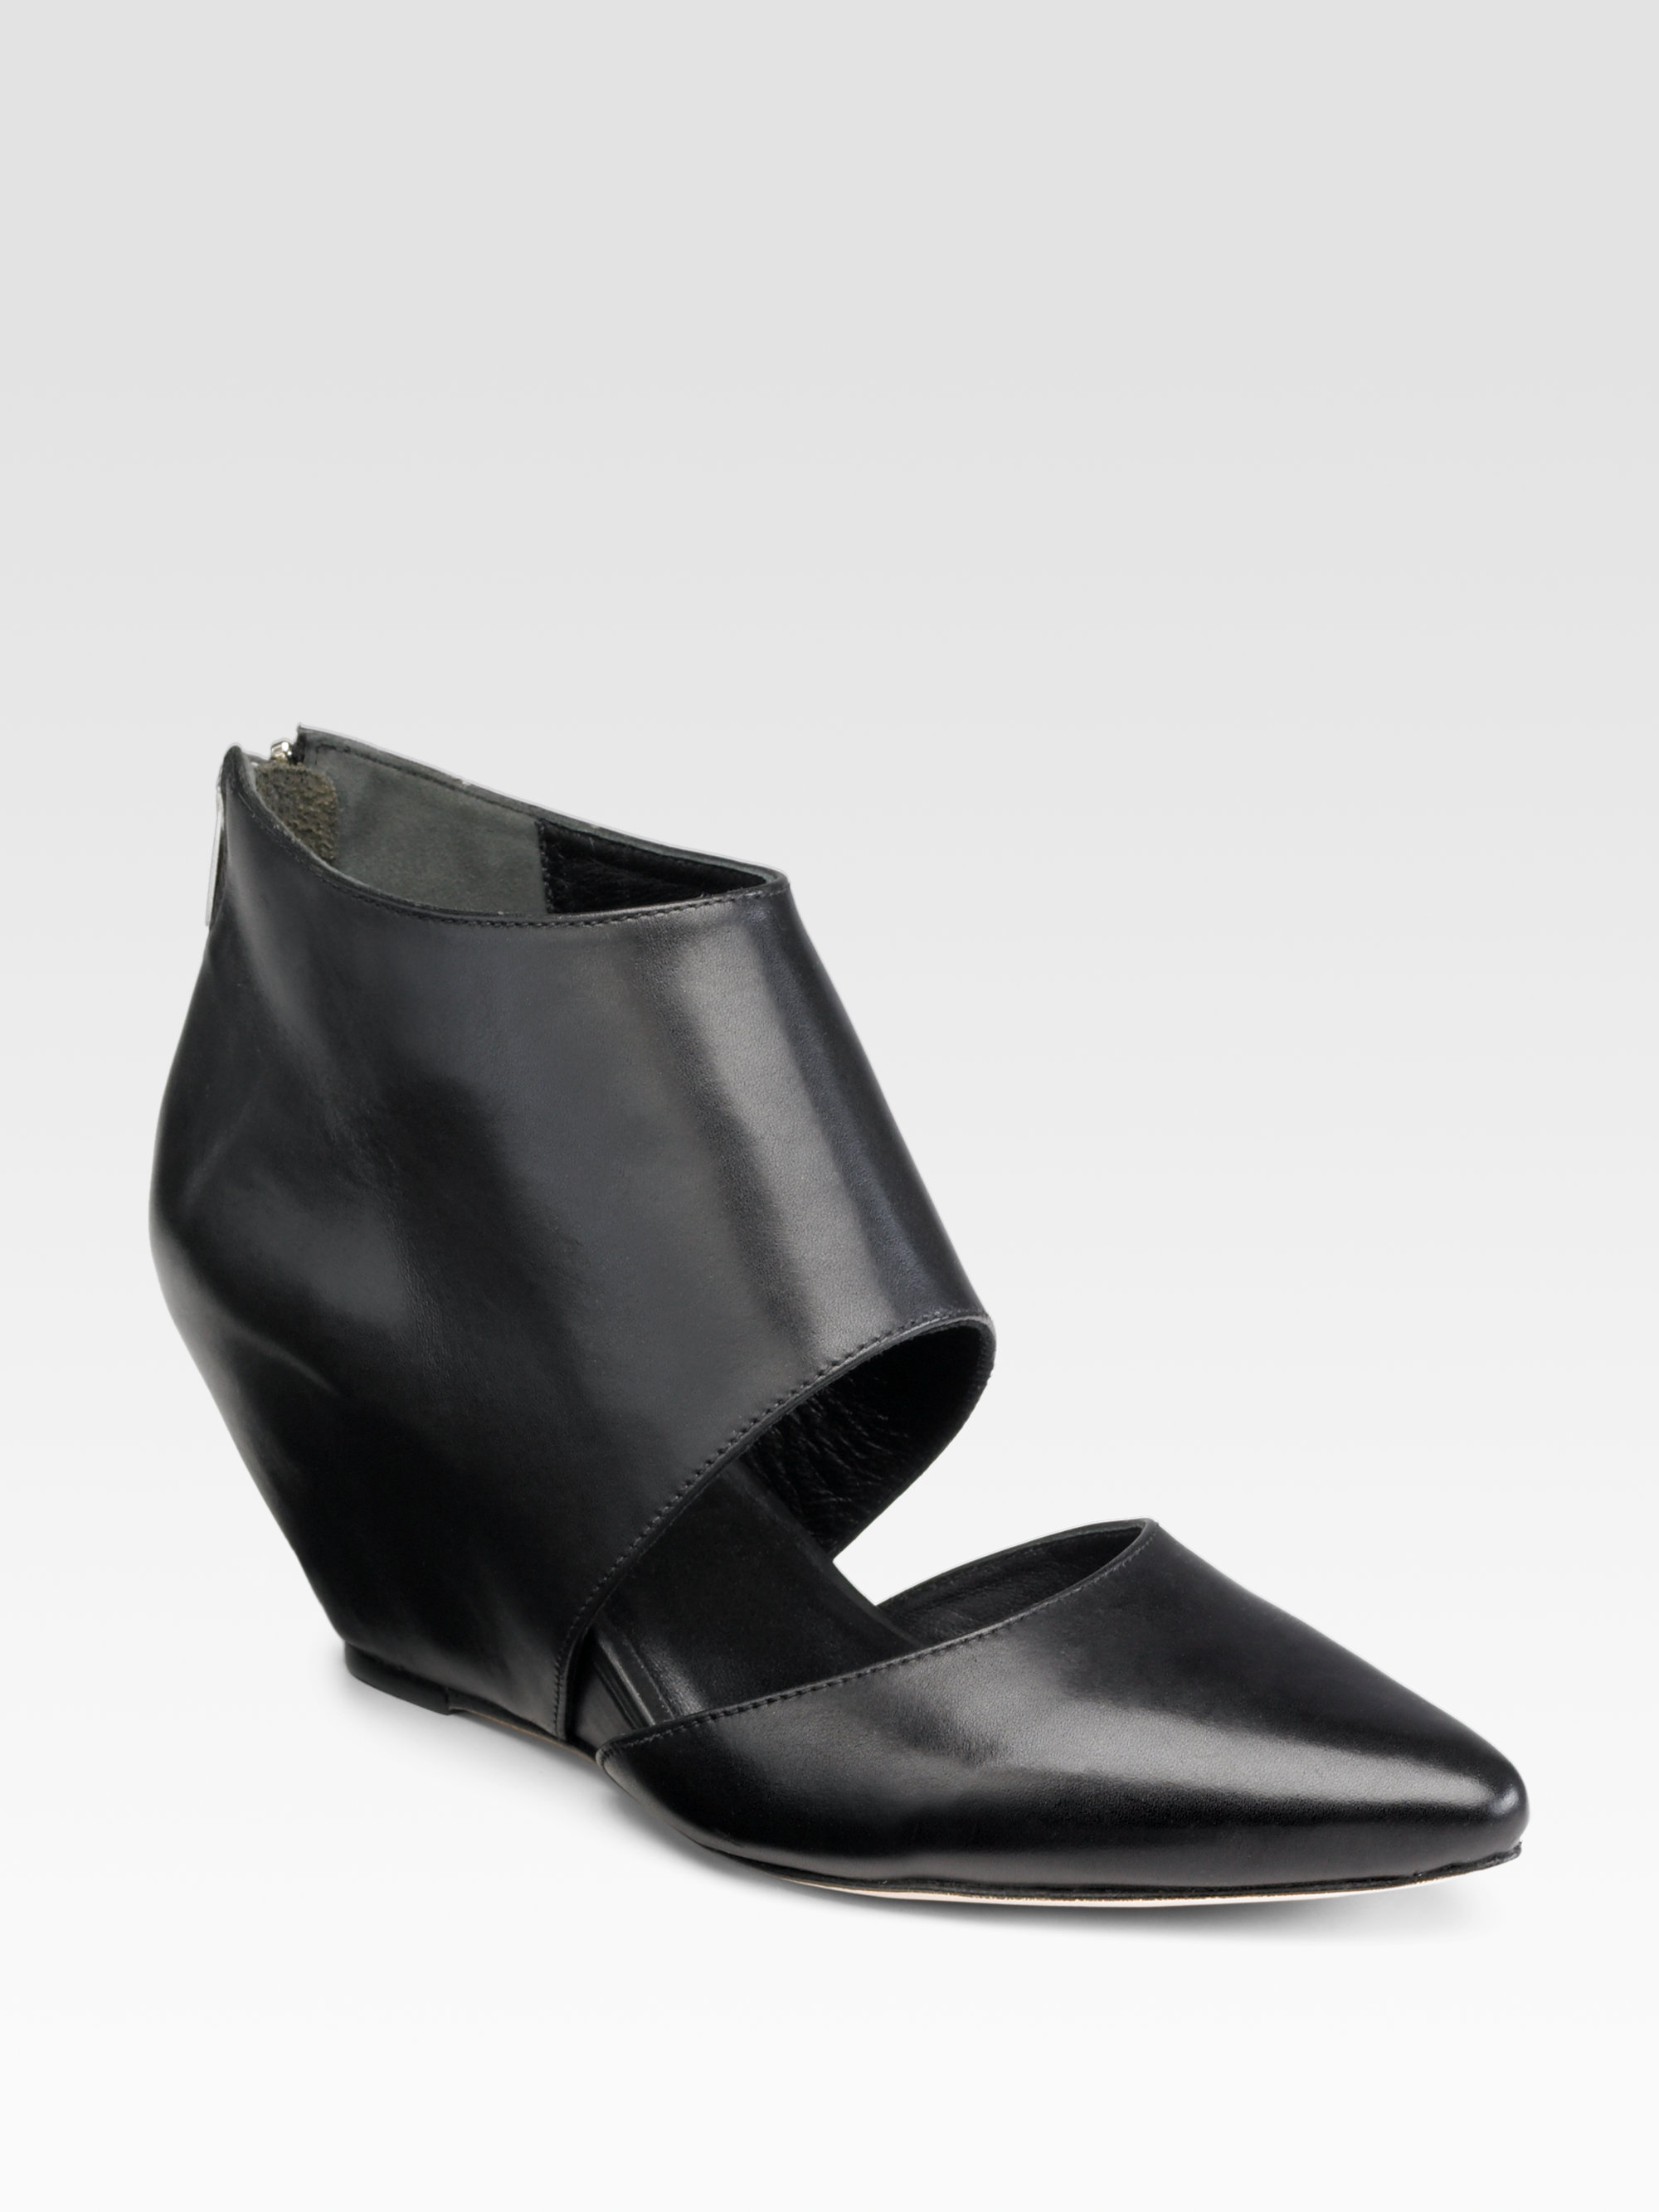 Loeffler randall Low Cutout Wedge Ankle Boots in Black | Lyst